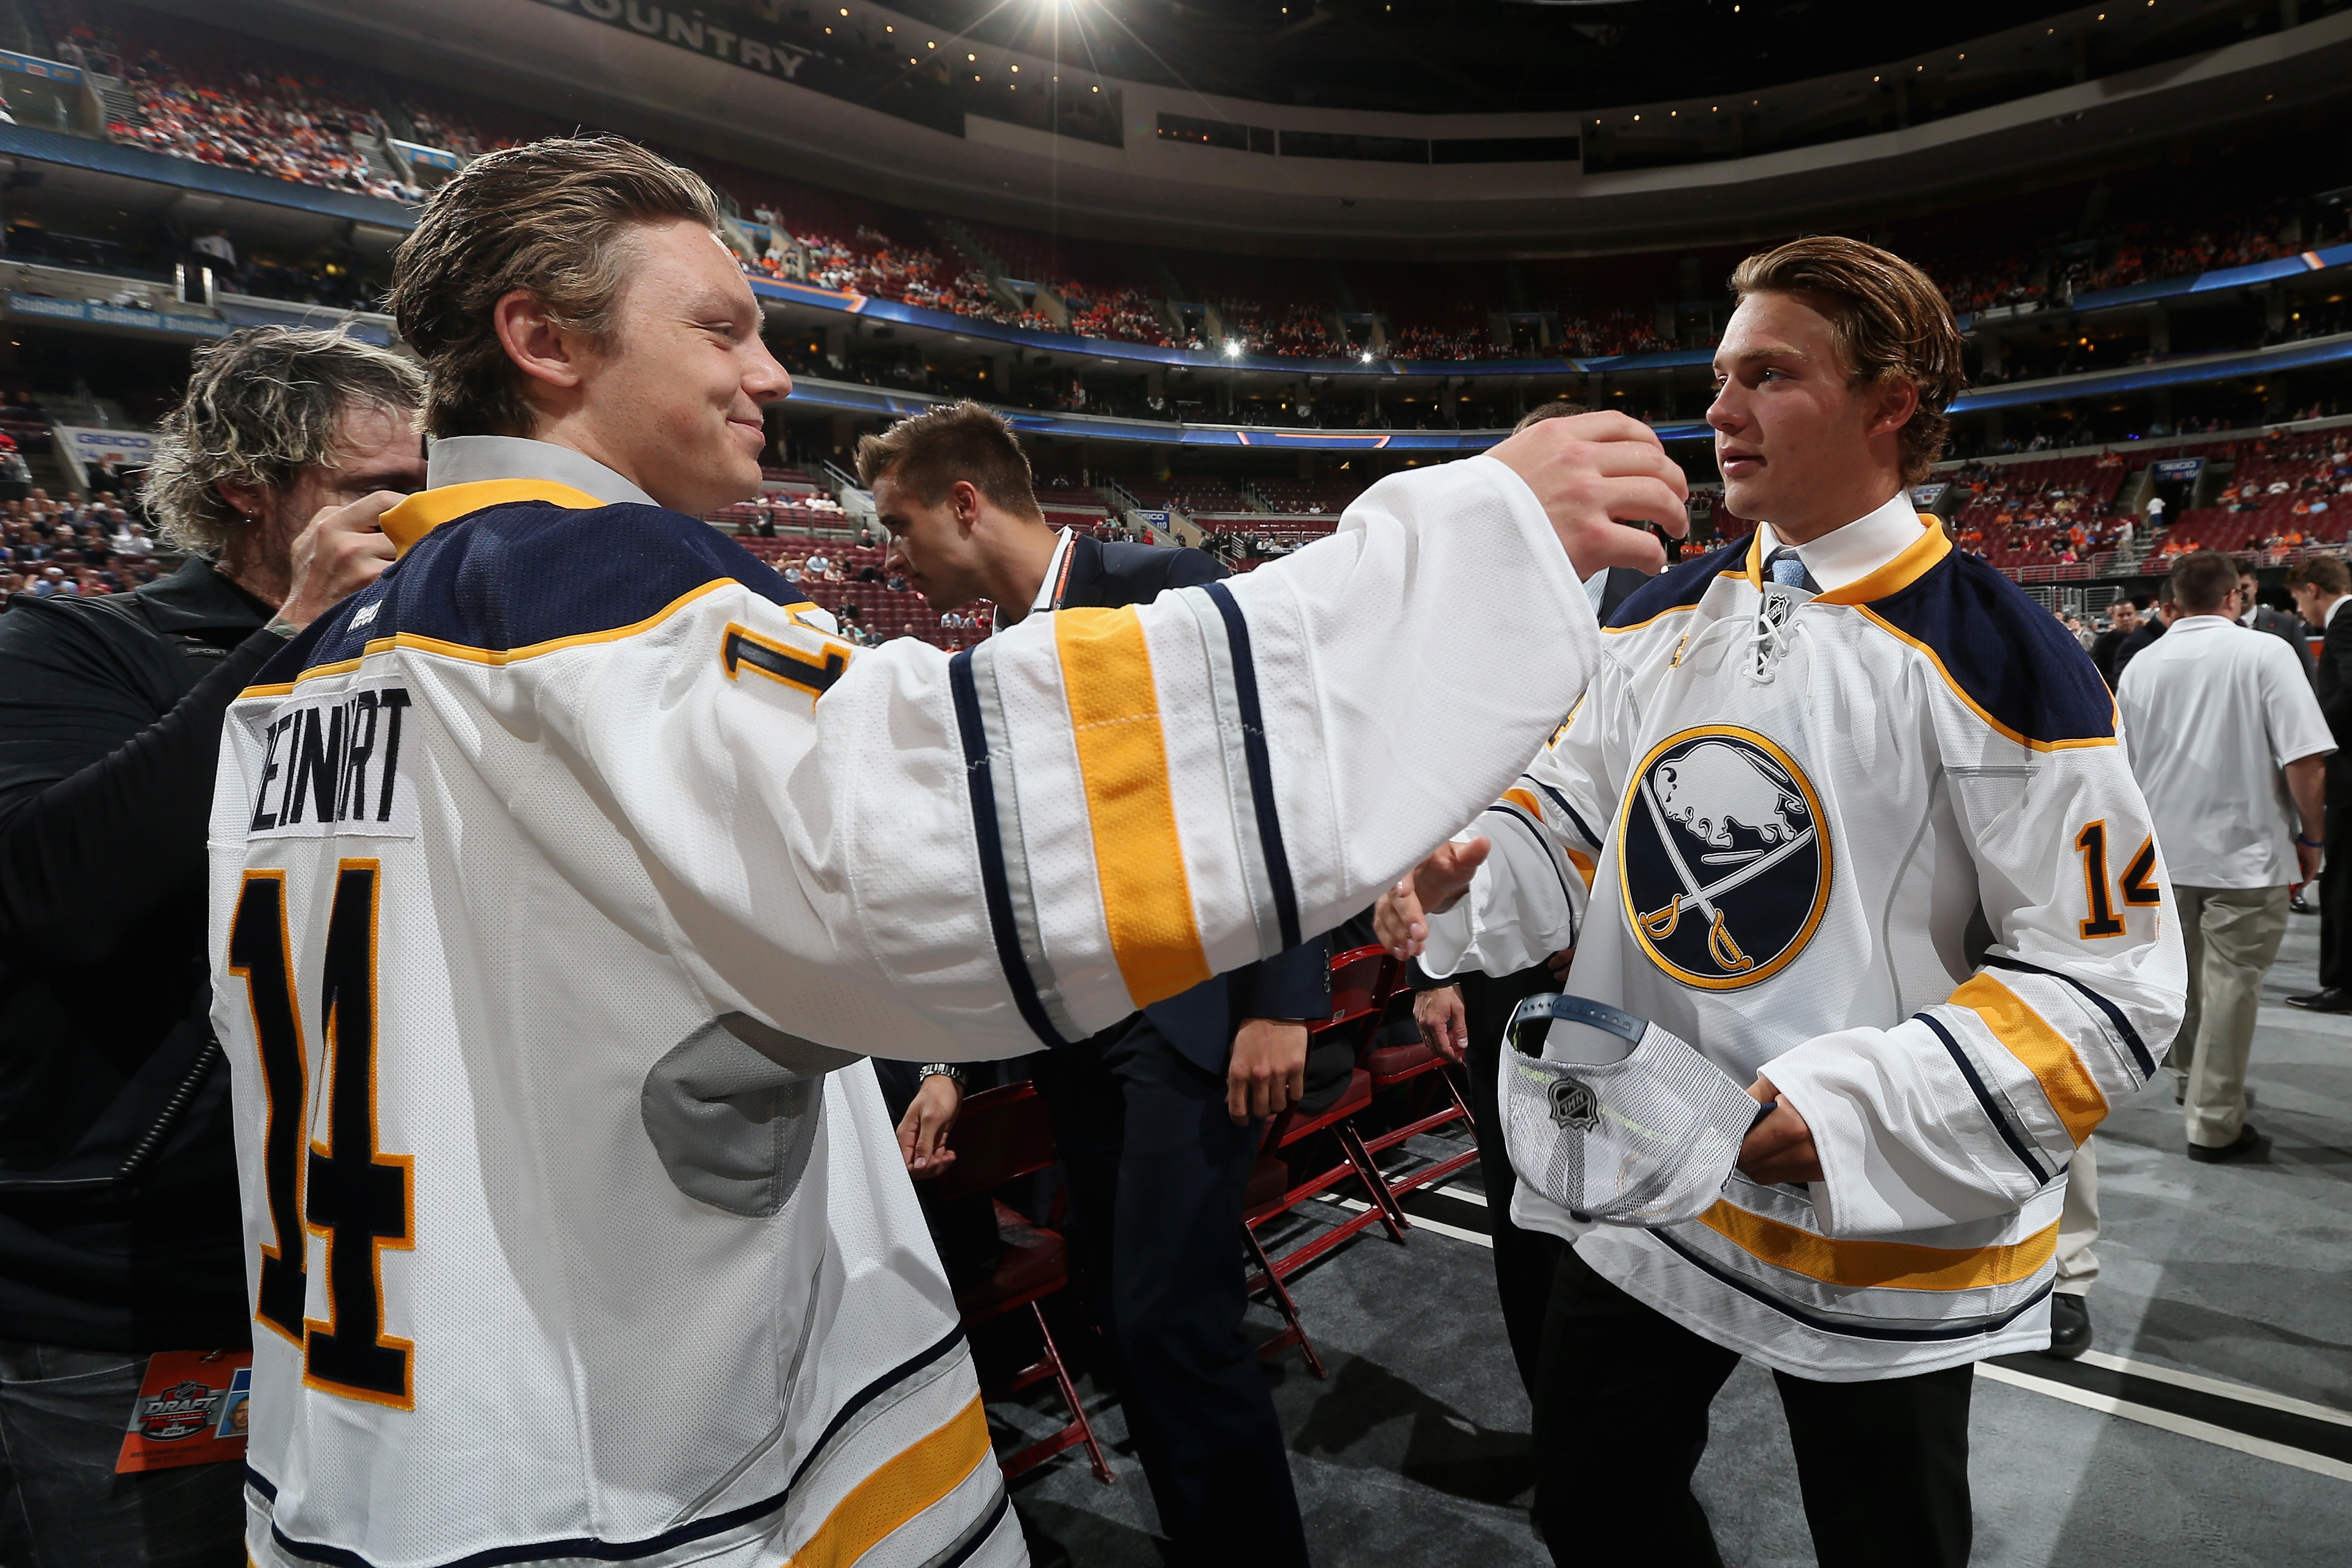 Sam Reinhart, the second pick overall, meets with Brendan Lemieux, who was selected at No. 31 by the Sabres to open the second day of the NHL Draft in Philadelphia.